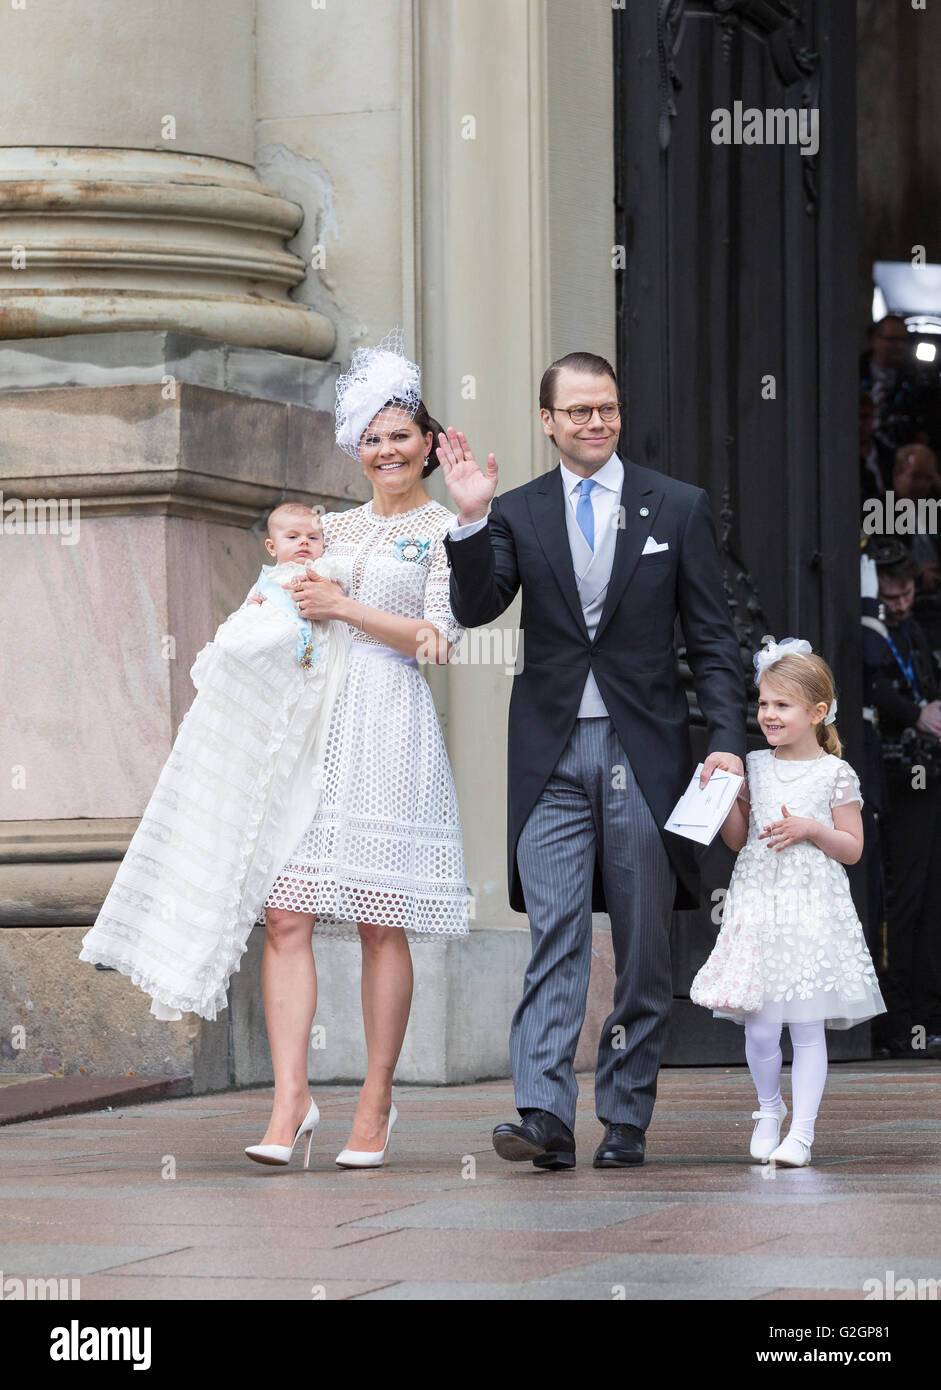 Baby Prince Oscar of Sweden's christening – family exits the Royal chapel. Prince Daniel waves - Stock Image